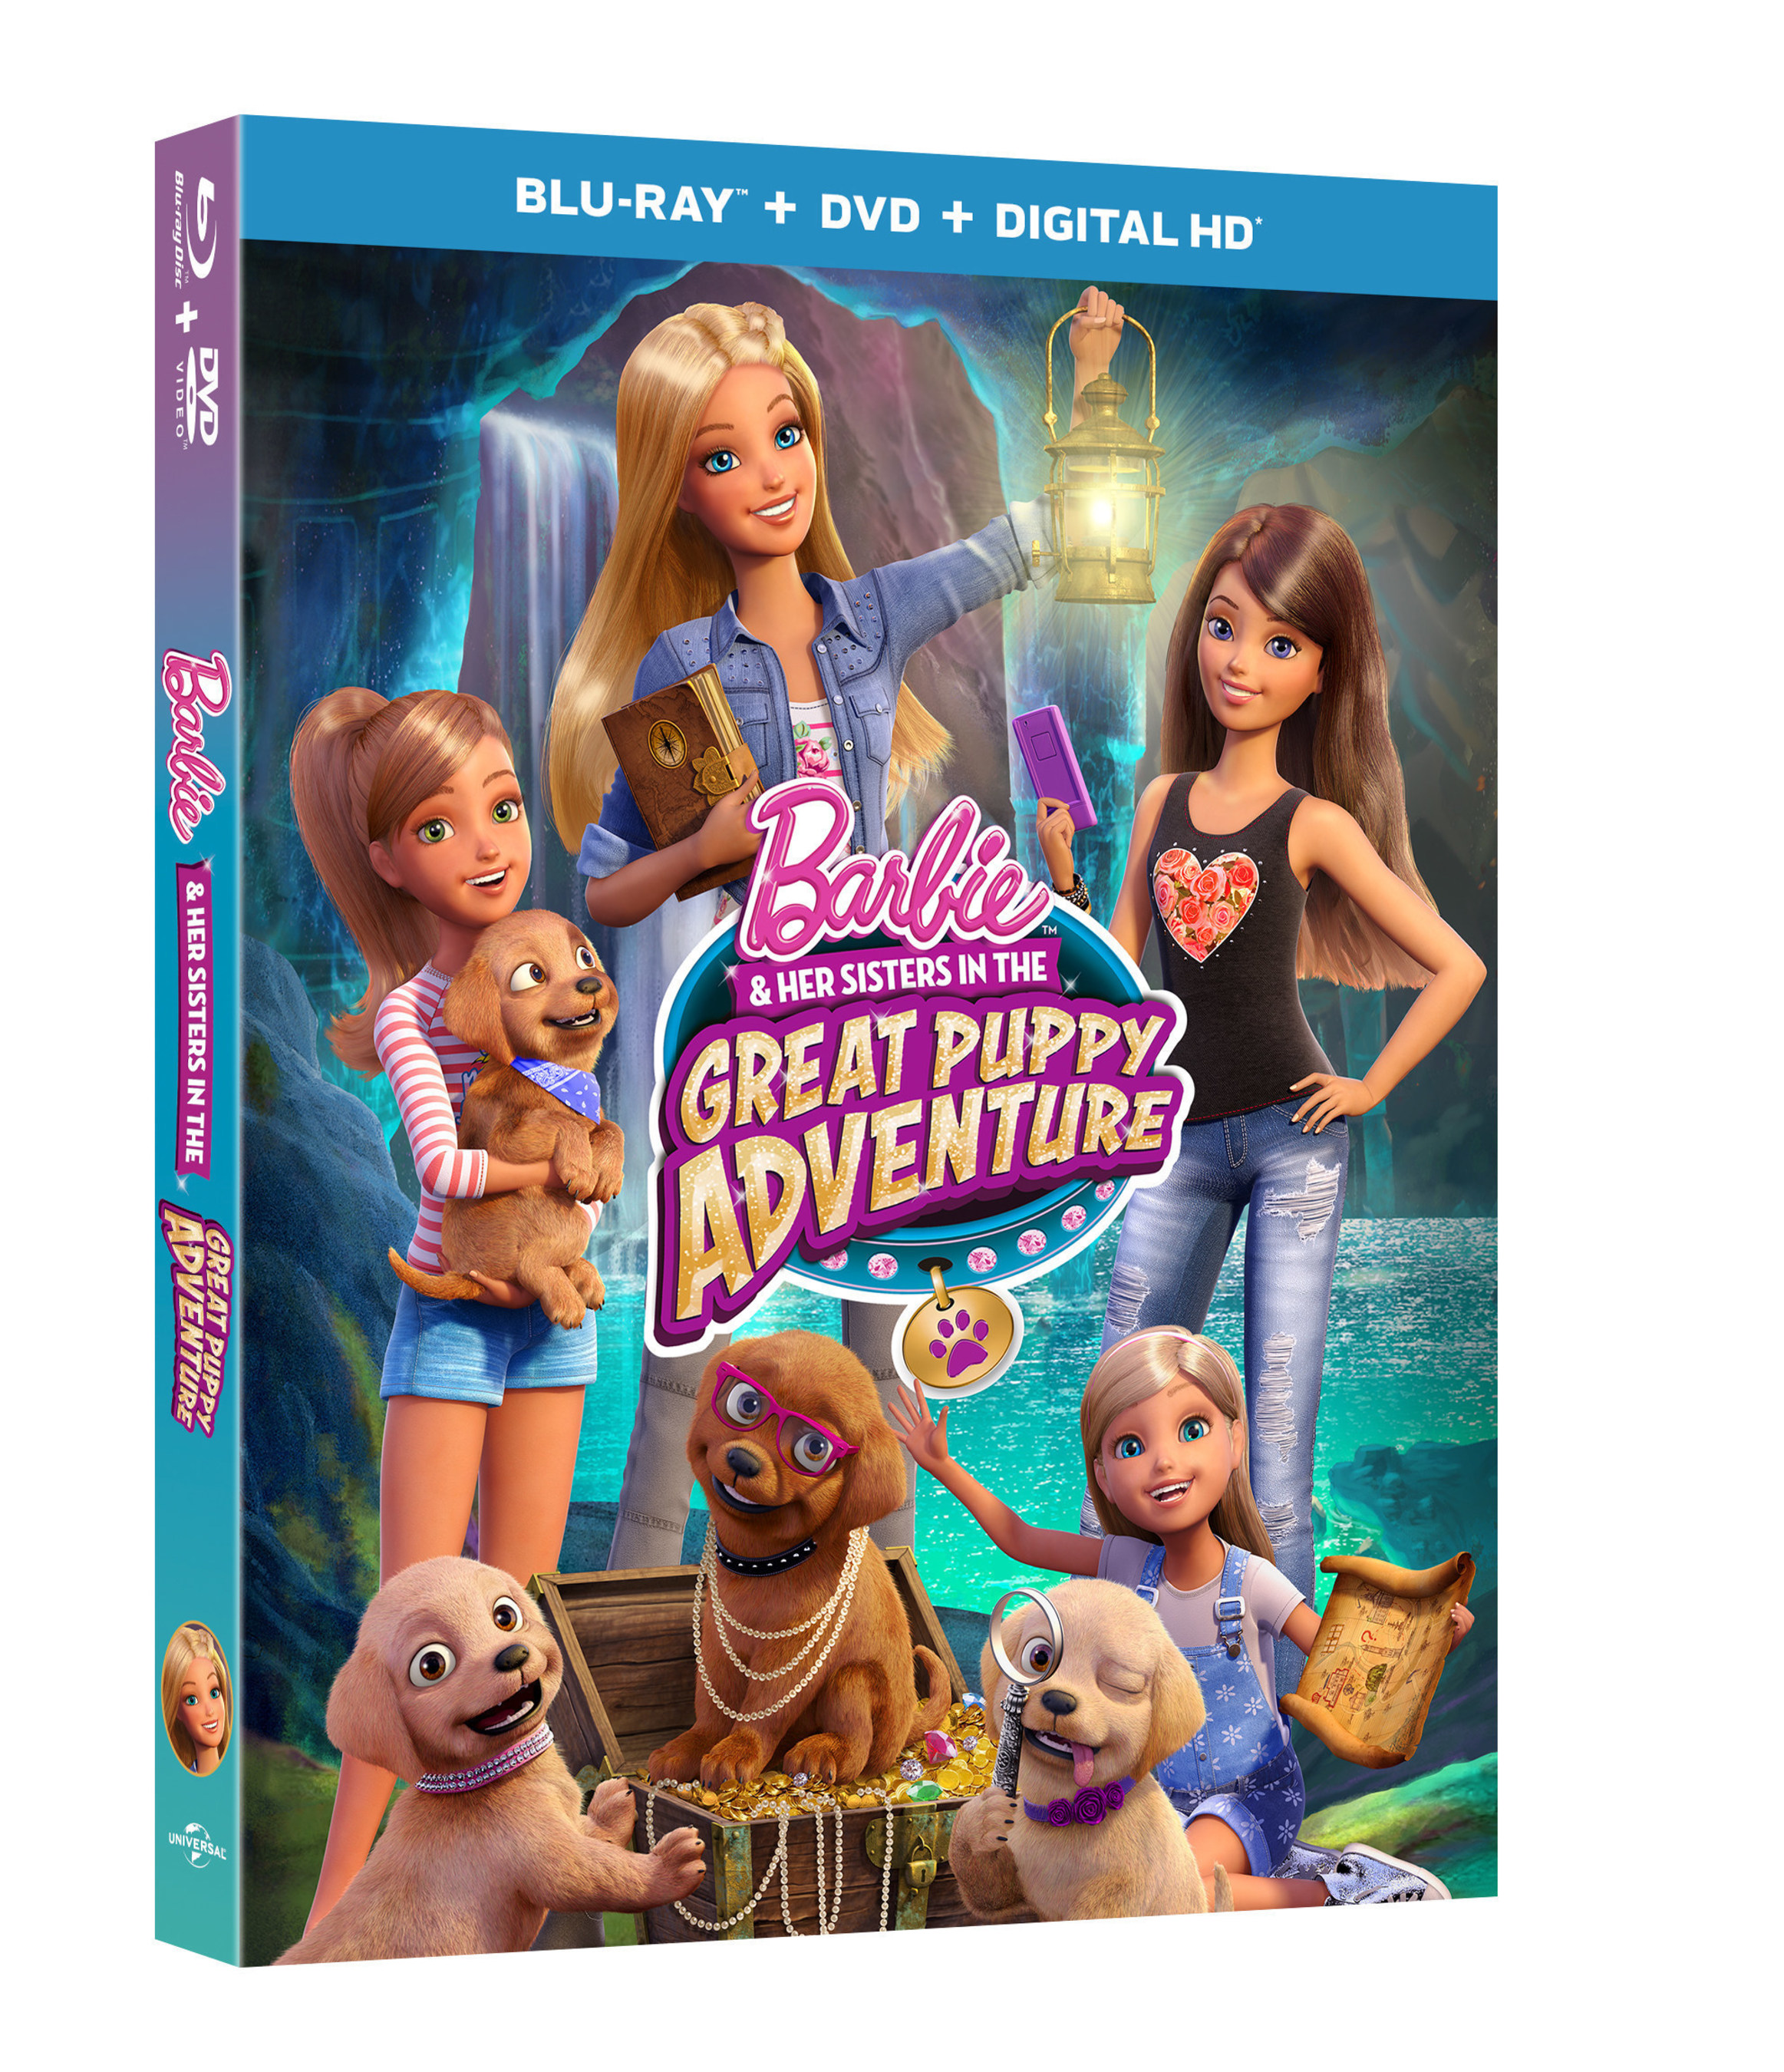 From Universal Pictures Home Entertainment: Barbie & Her Sisters in the Great Puppy Adventure